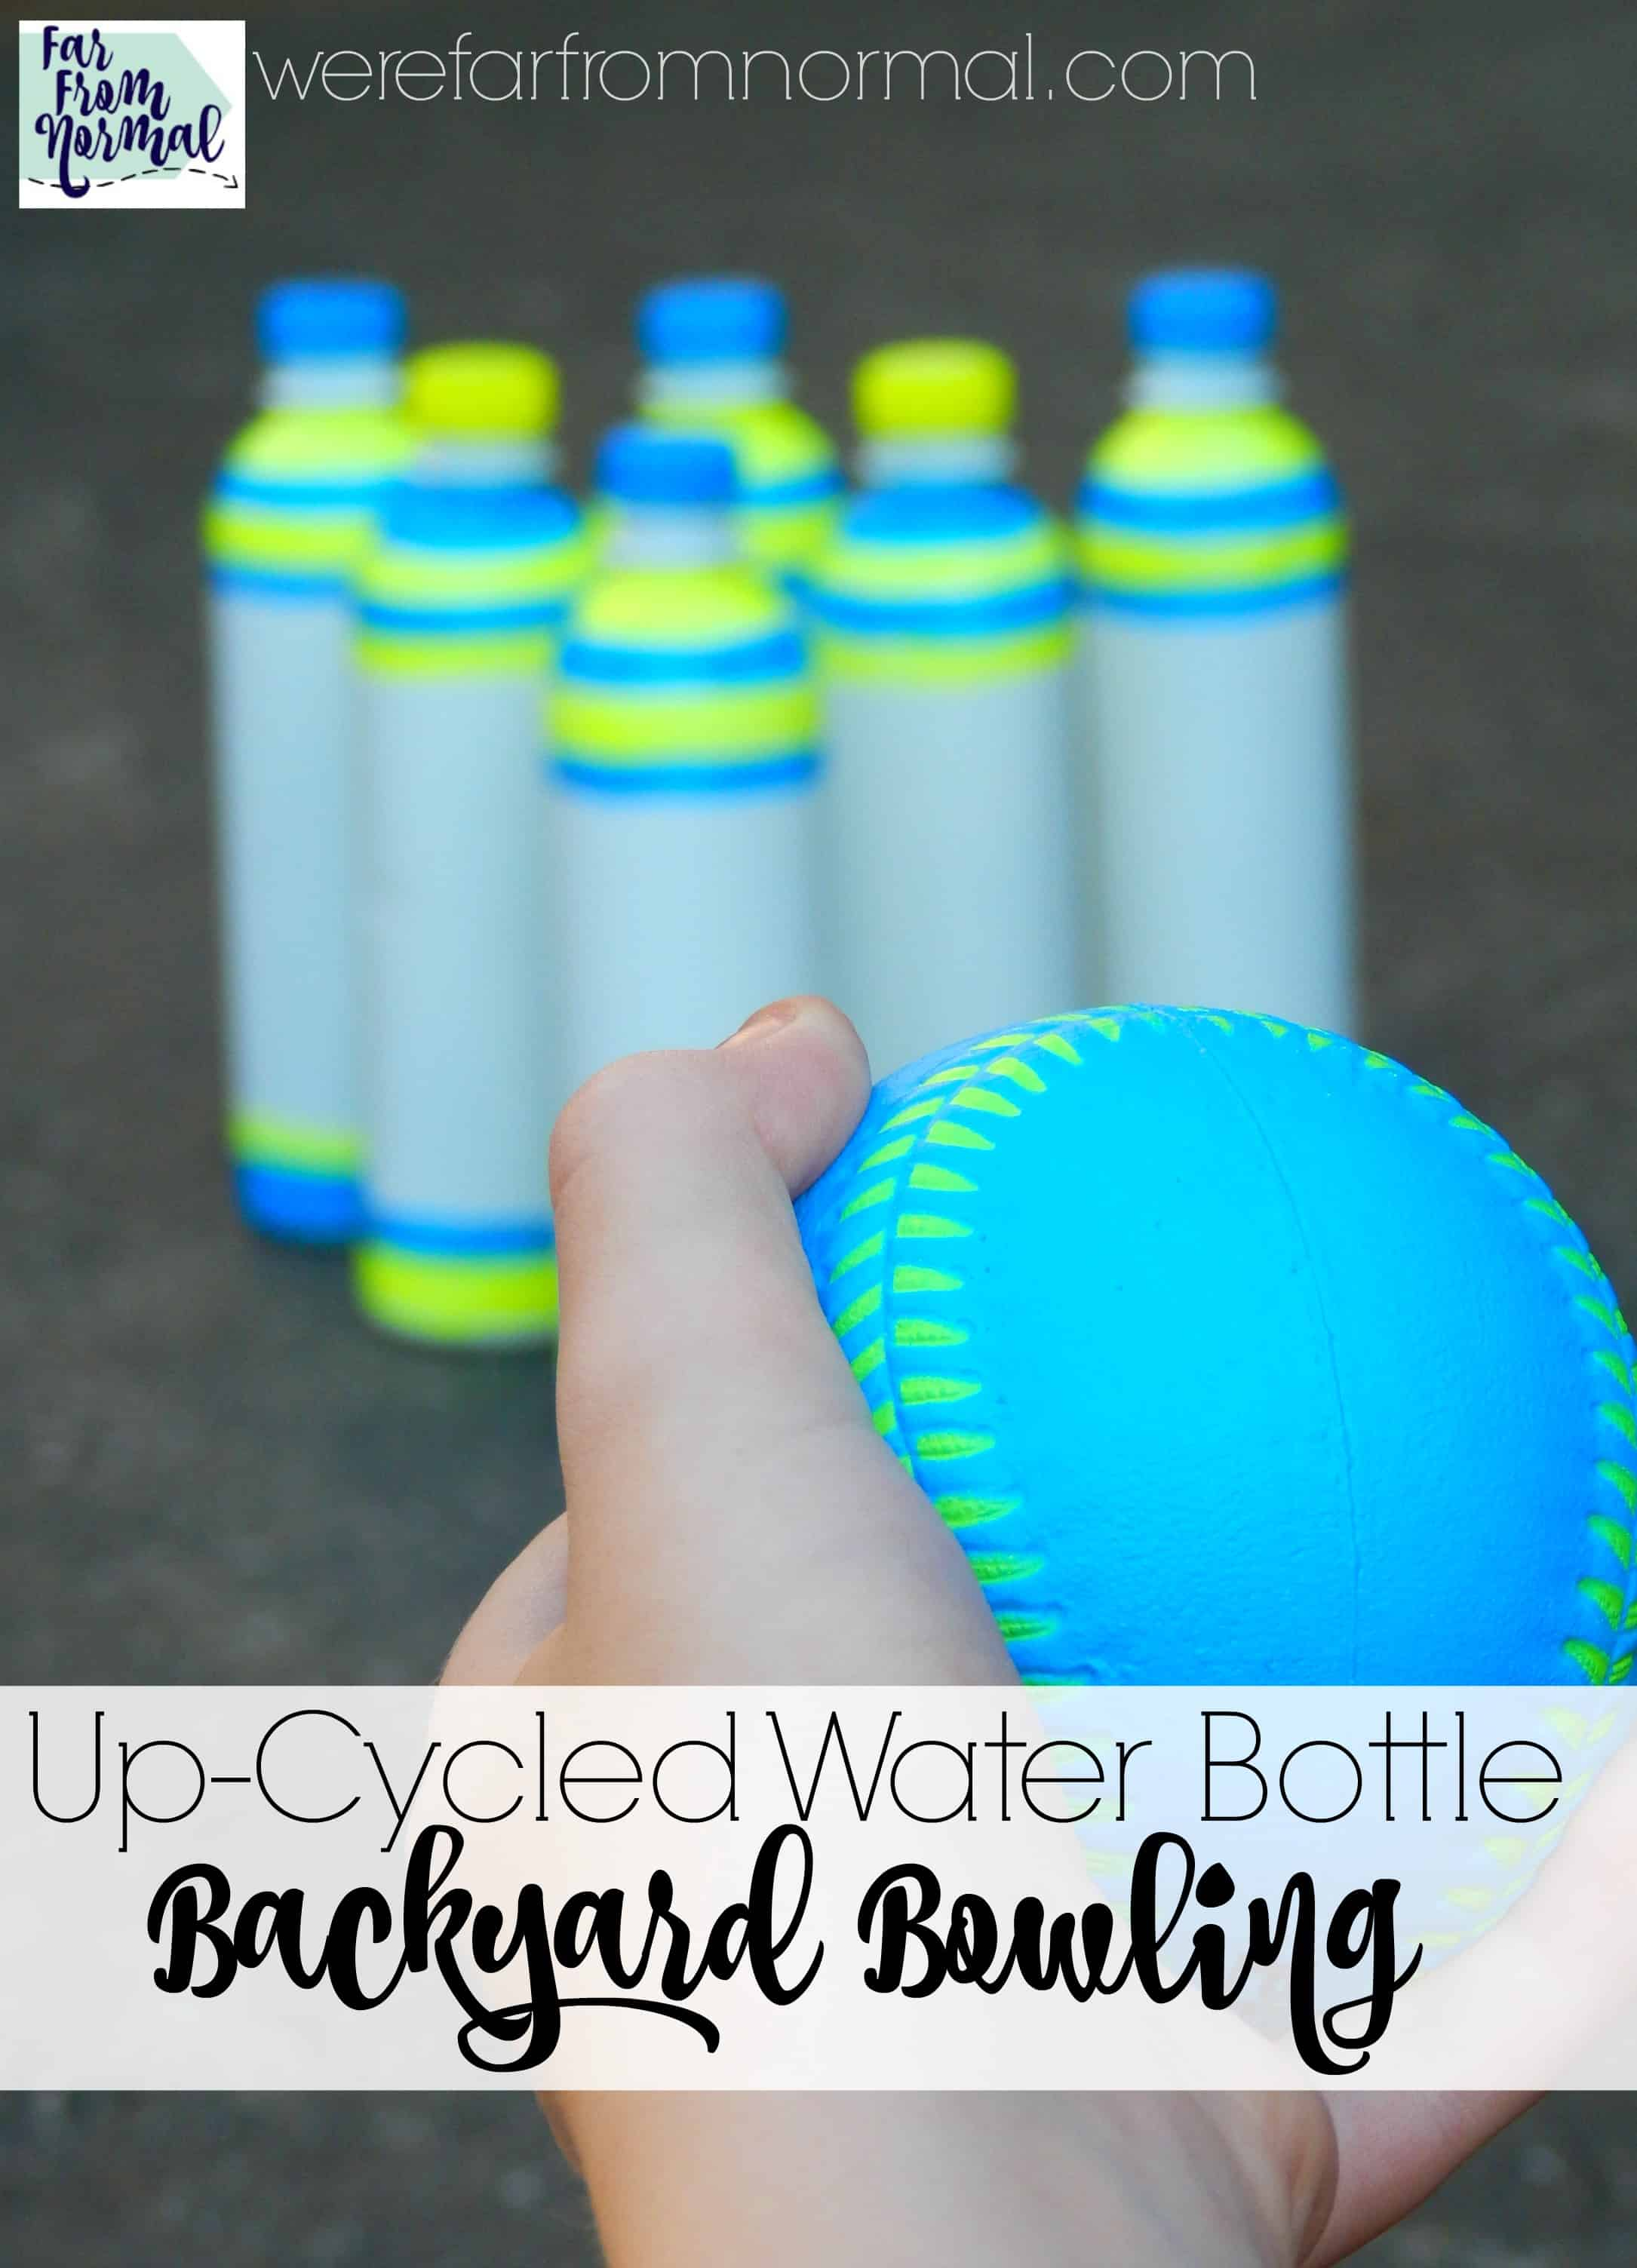 Up-Cycled Water Bottle Backyard Bowling